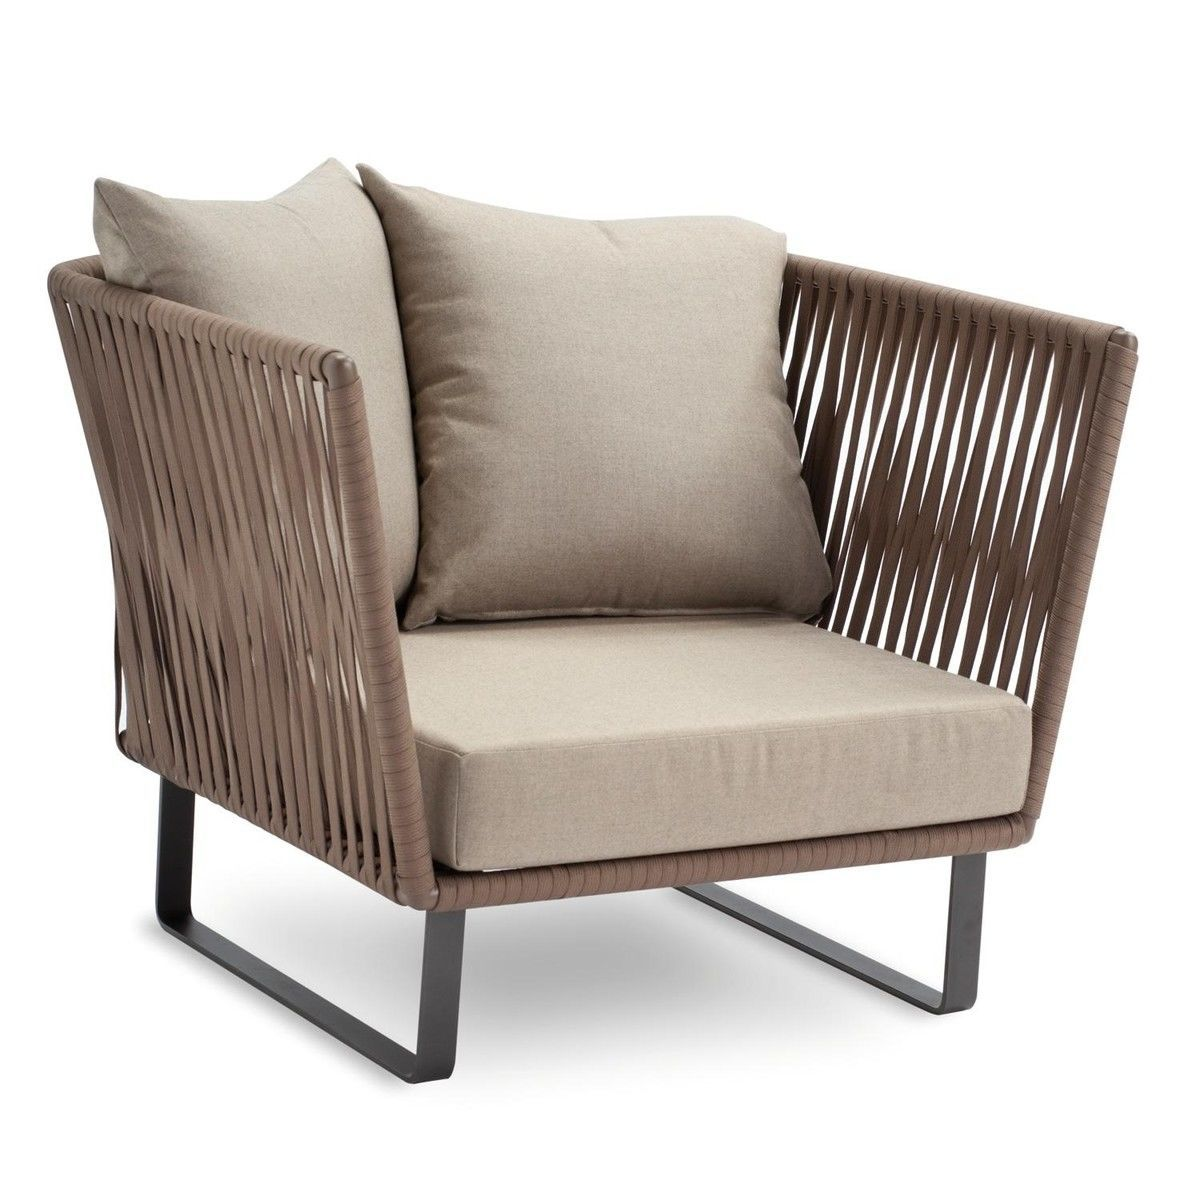 Bitta Club Armchair Garden Chair Kettal AmbienteDirectcom